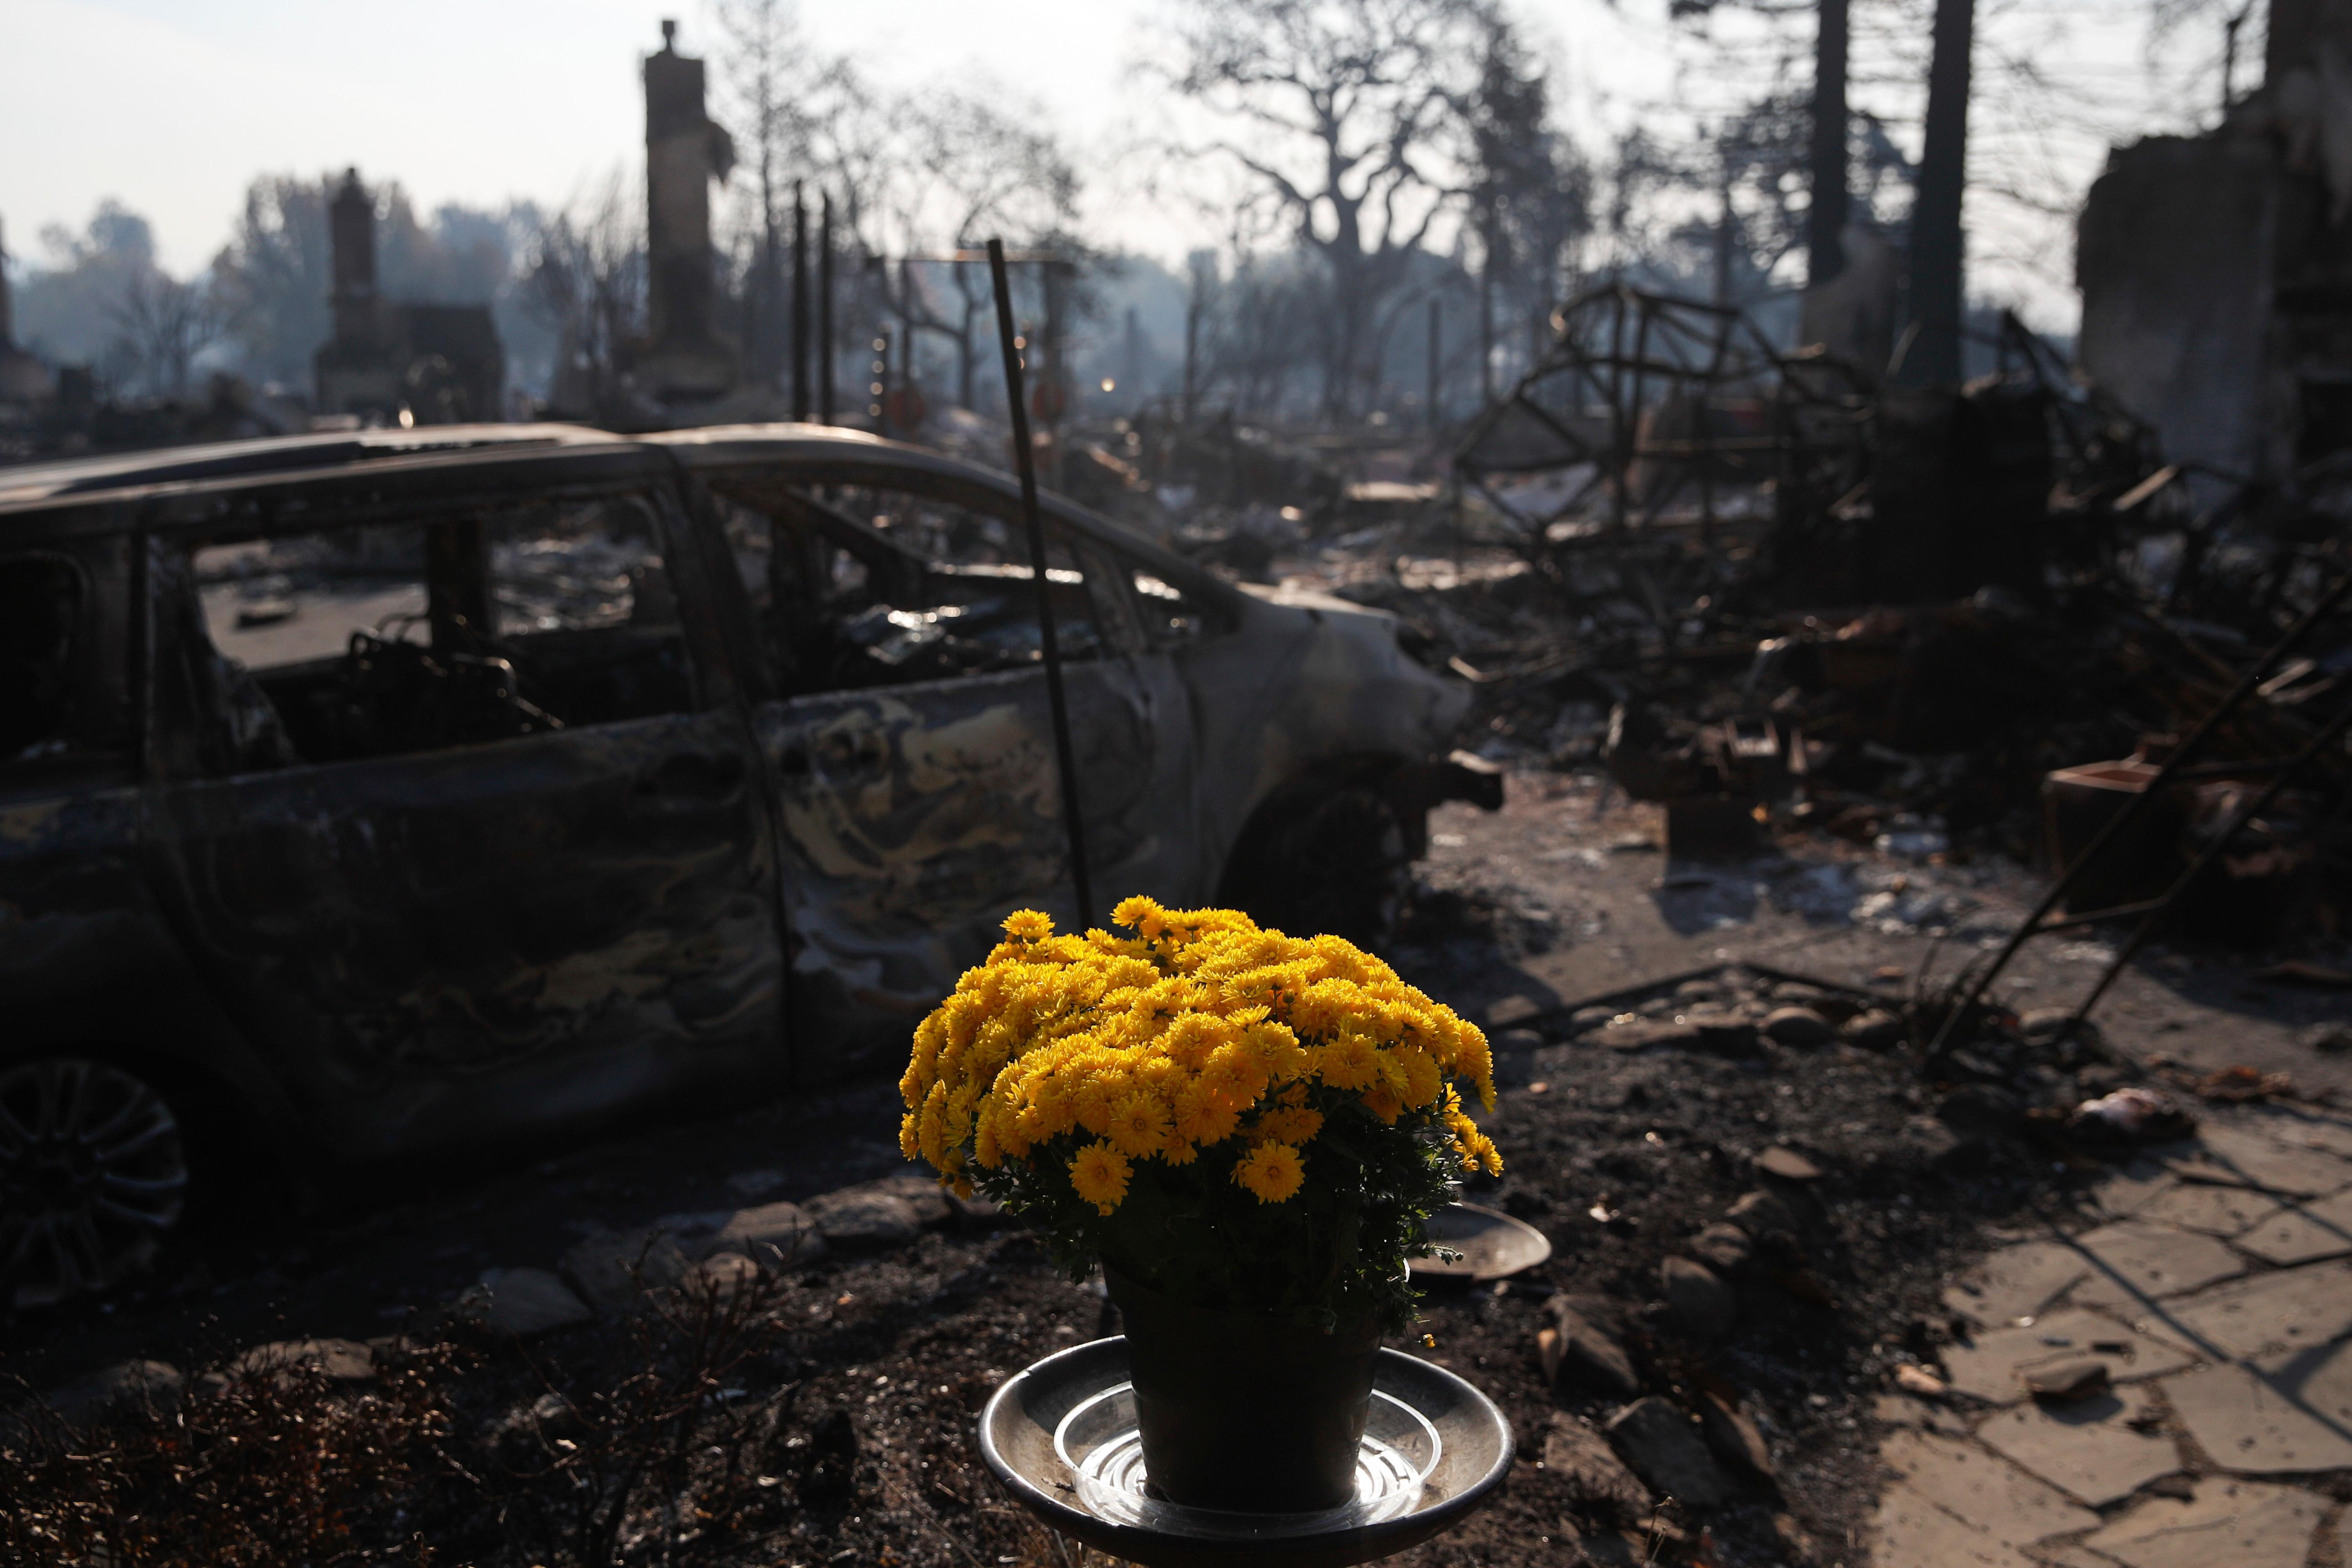 Fresh flowers are placed, Sunday, Oct. 15, 2017, in the Coffey Park neighborhood in Santa Rosa, Calif., that was devastated by a wildfire. A state fire spokesman says it appears firefighters are making good progress on deadly wildfires that started a week earlier, devastating wine country and other parts of rural Northern California. (AP Photo/Jae C. Hong)